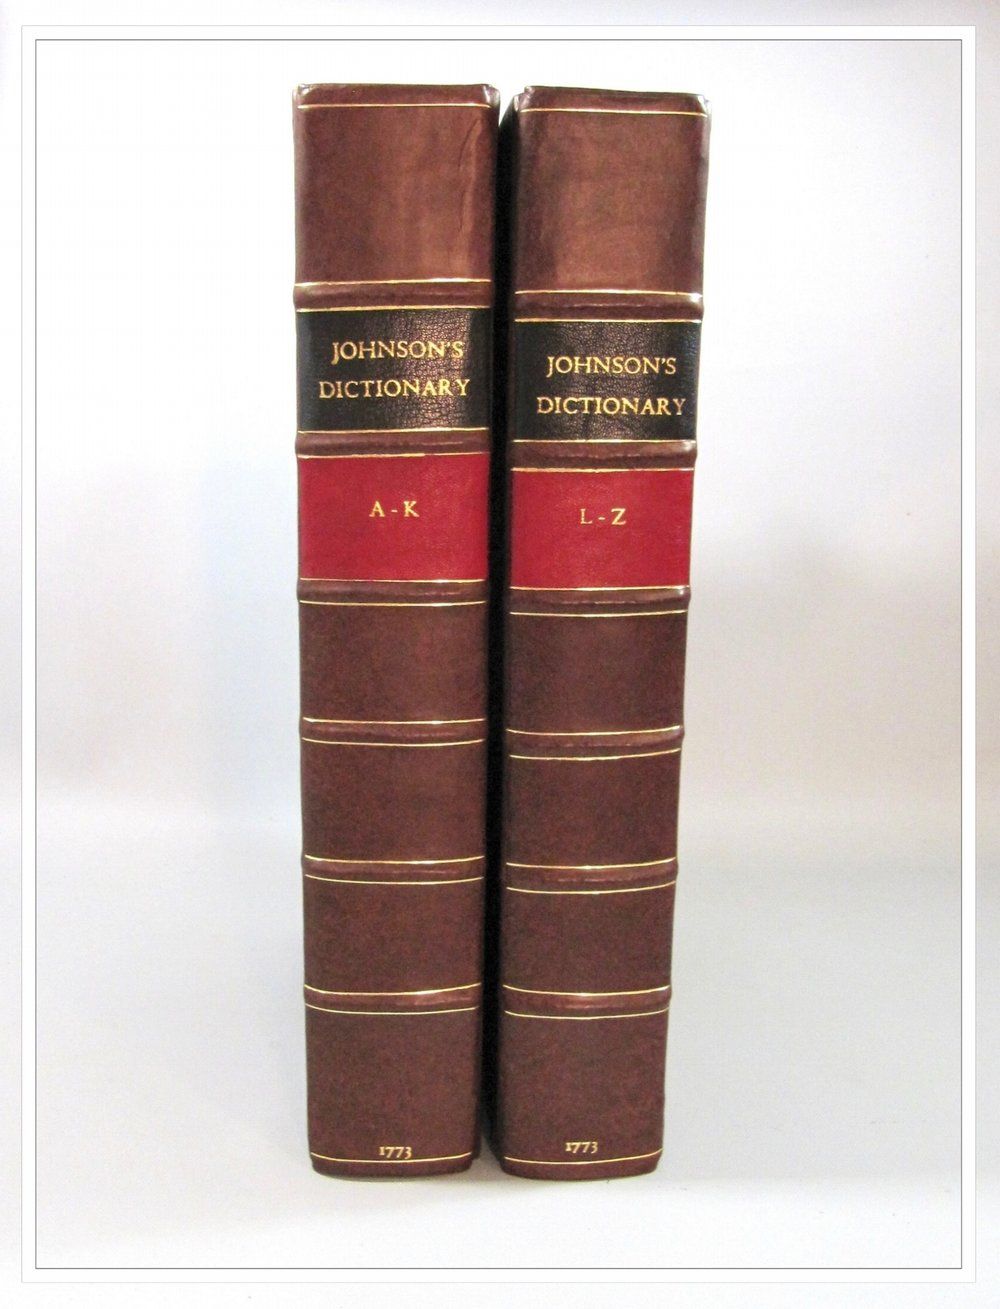 Johnson's English Dictionary, 4th edition 1773